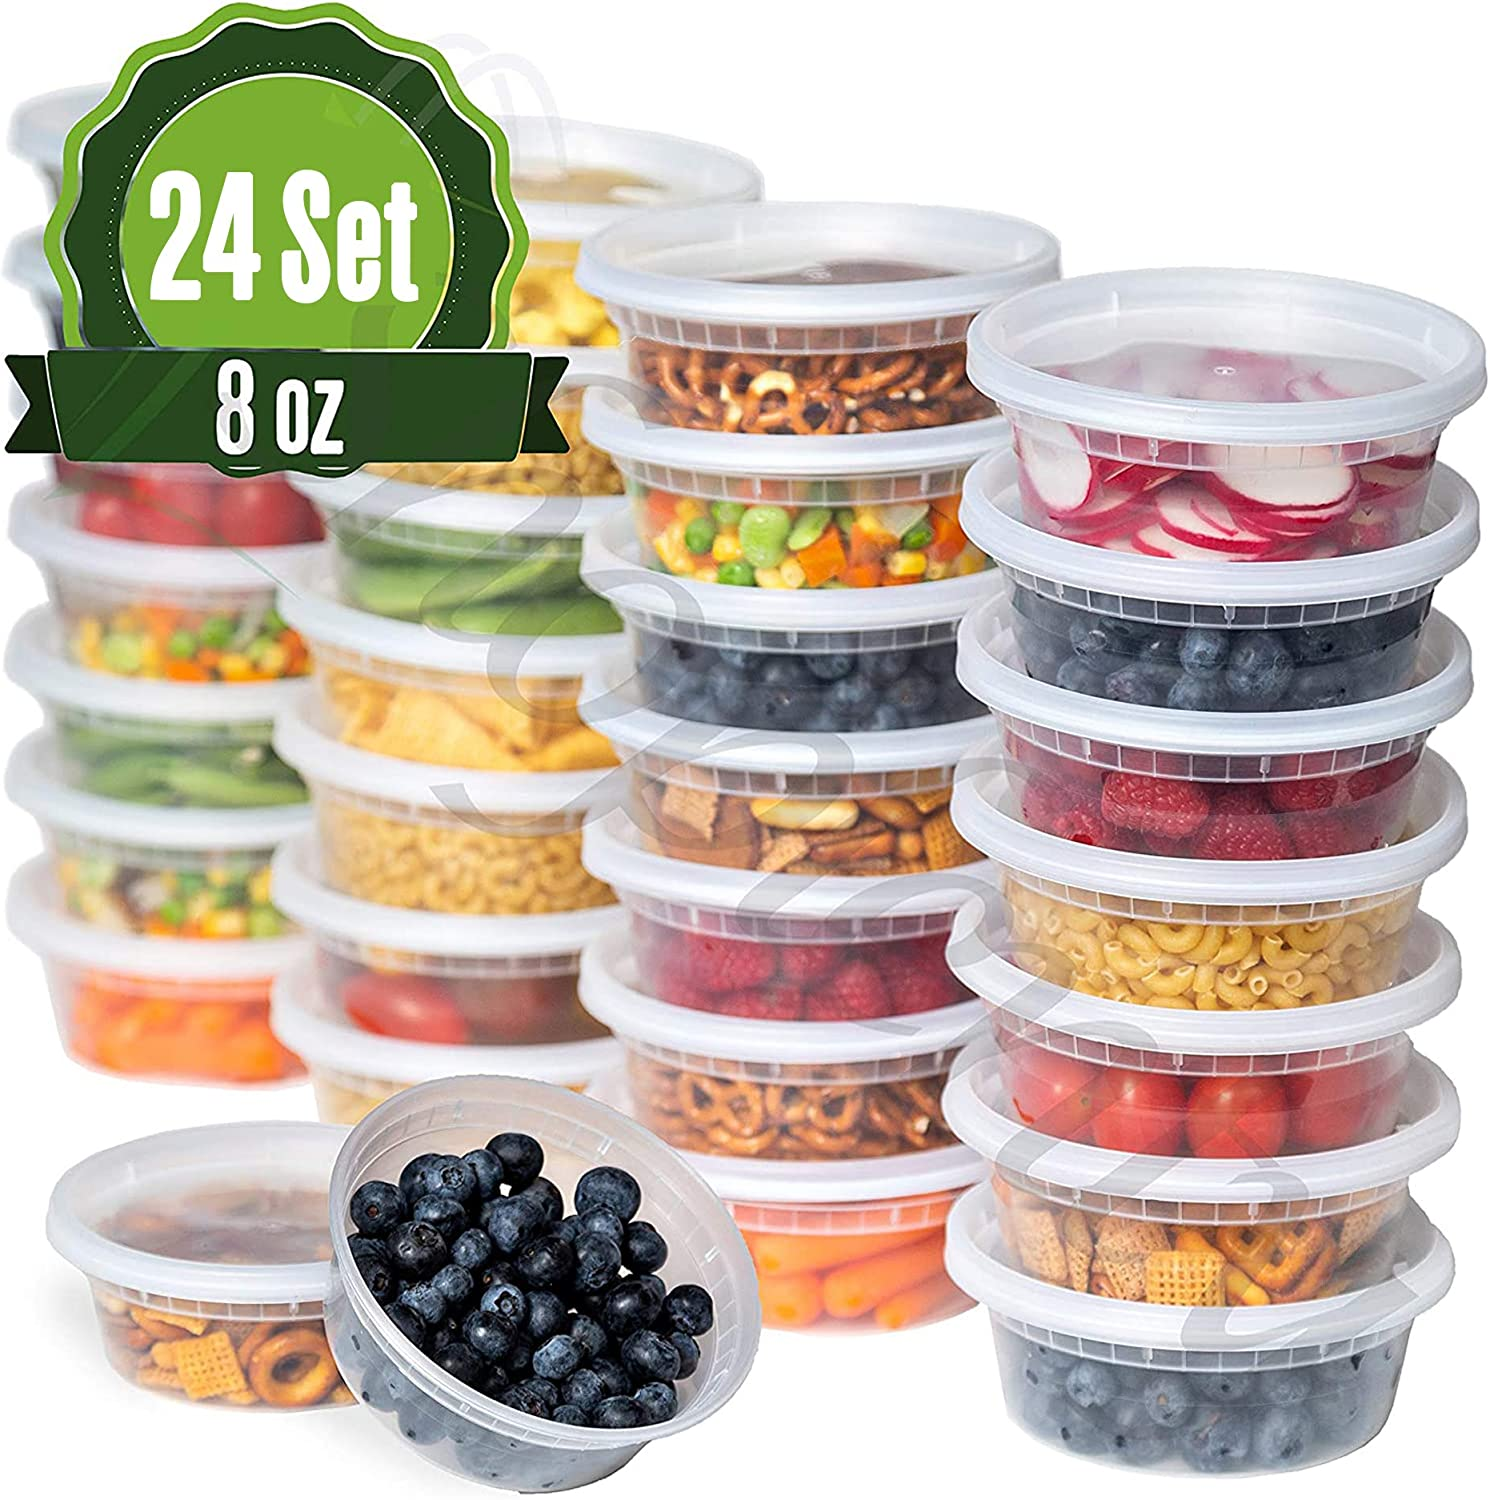 Safeware 8oz [24 Sets] Deli Plastic Food Storage Containers with Airtight Lids - Great for Slime, Soup Containers, Portion Control and Meal Prep | Microwave | Dishwasher | Freezer Safe | Leakproof |